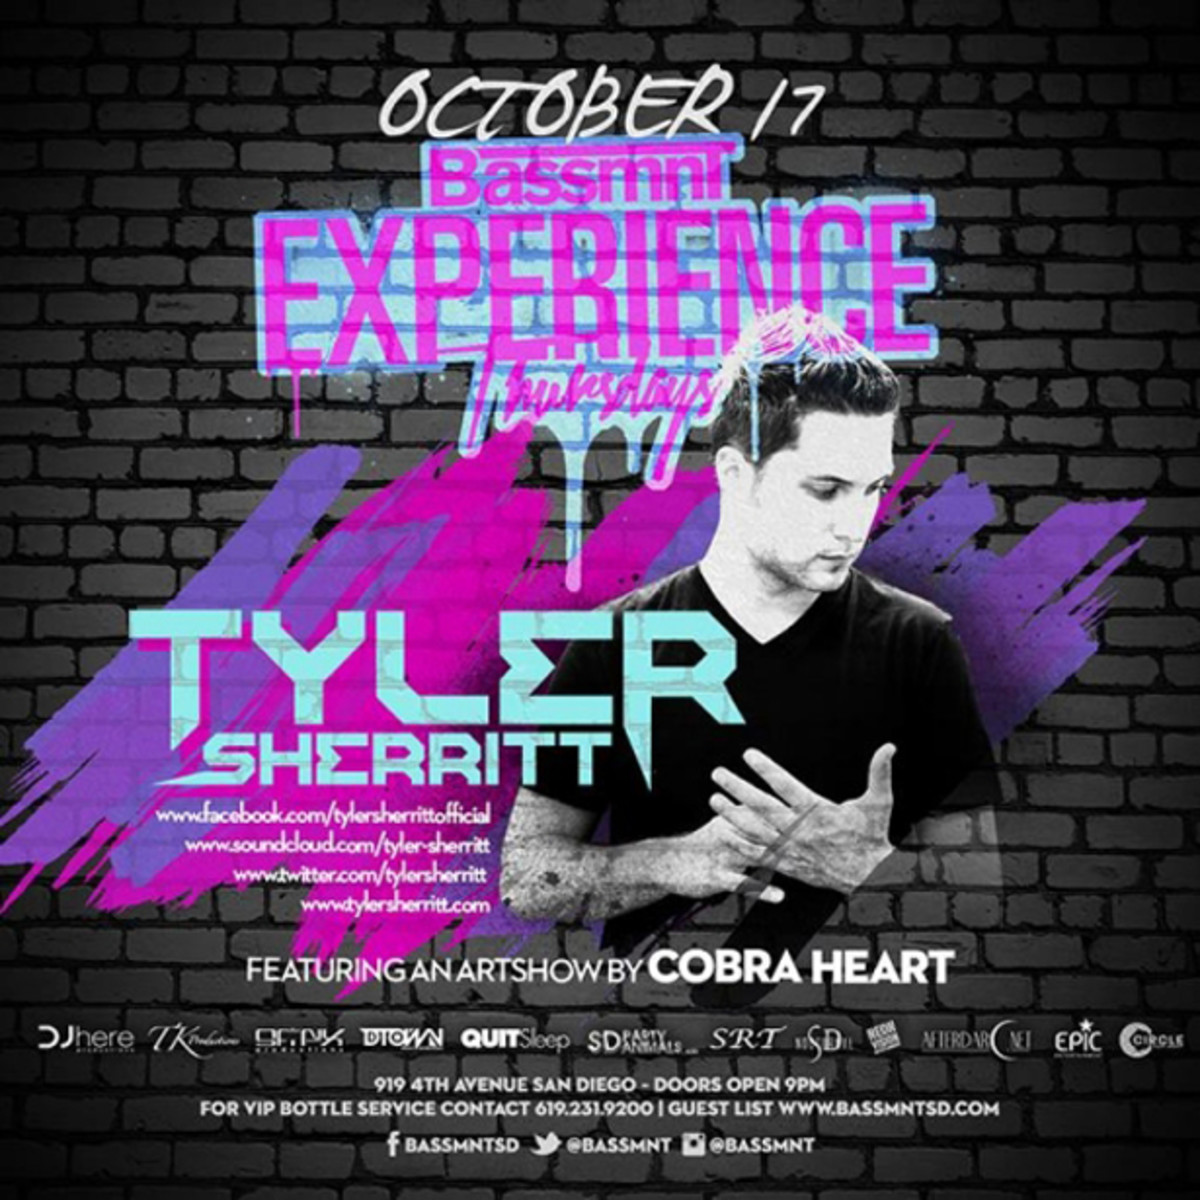 Spotlight SD Series : Bassmnt Welcomes Rising Star Tyler Sherritt; Hosts Local Art Exhibition by Cobra Heart